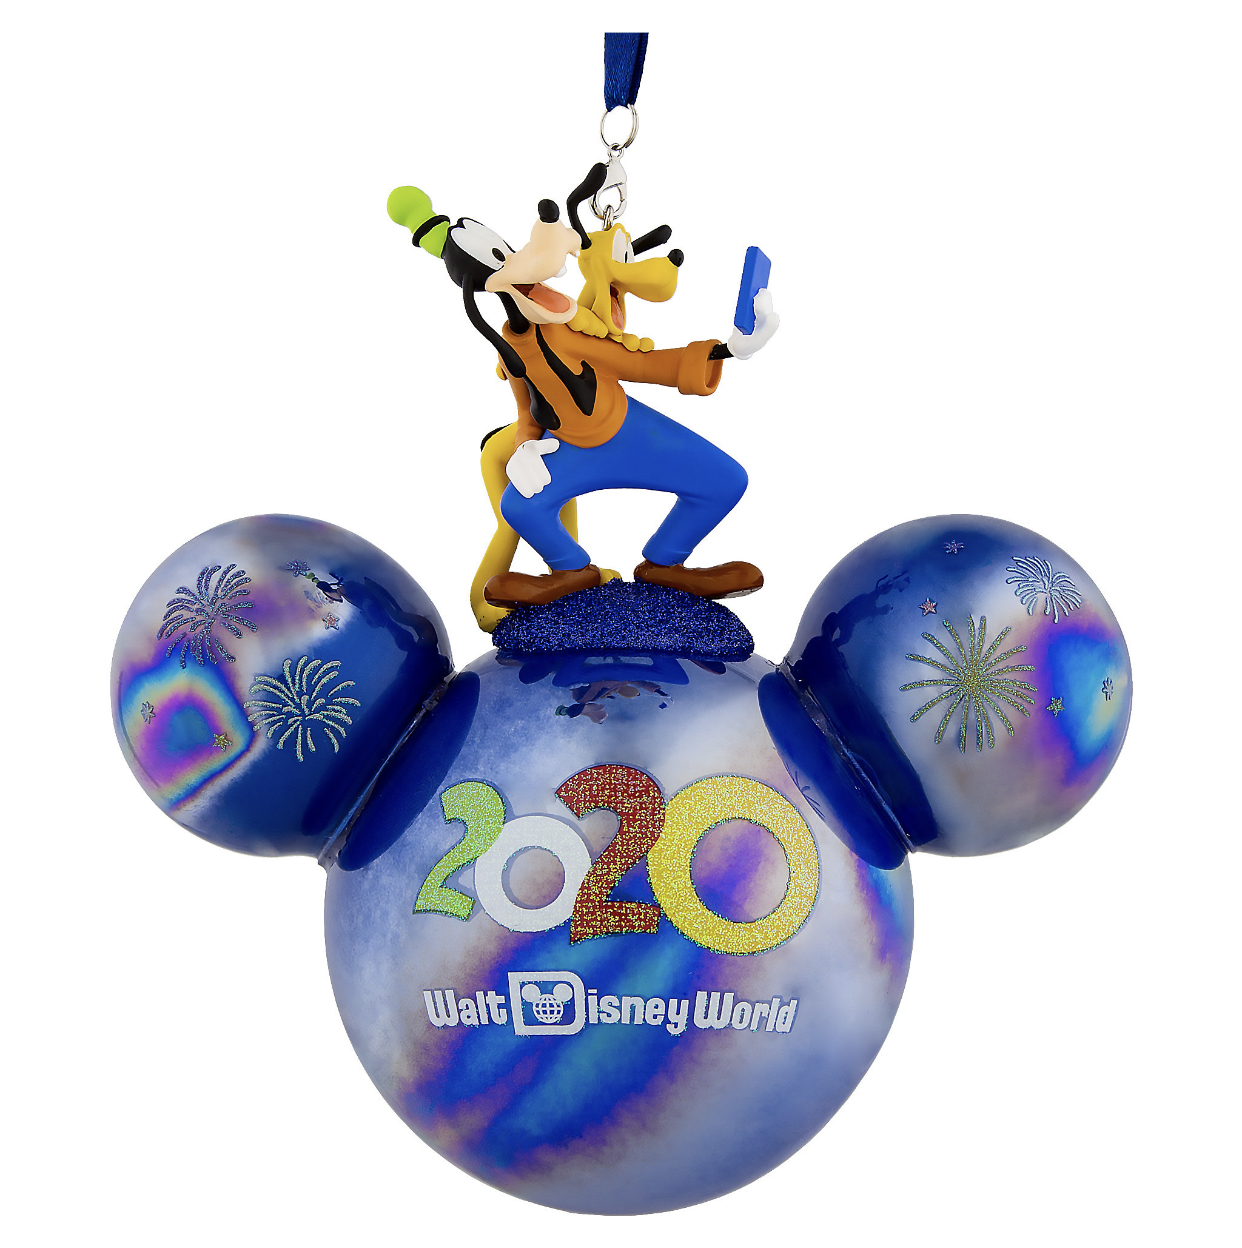 Disney Mickey Ears Icon Ornament - 2020 Dated - Goofy and Pluto